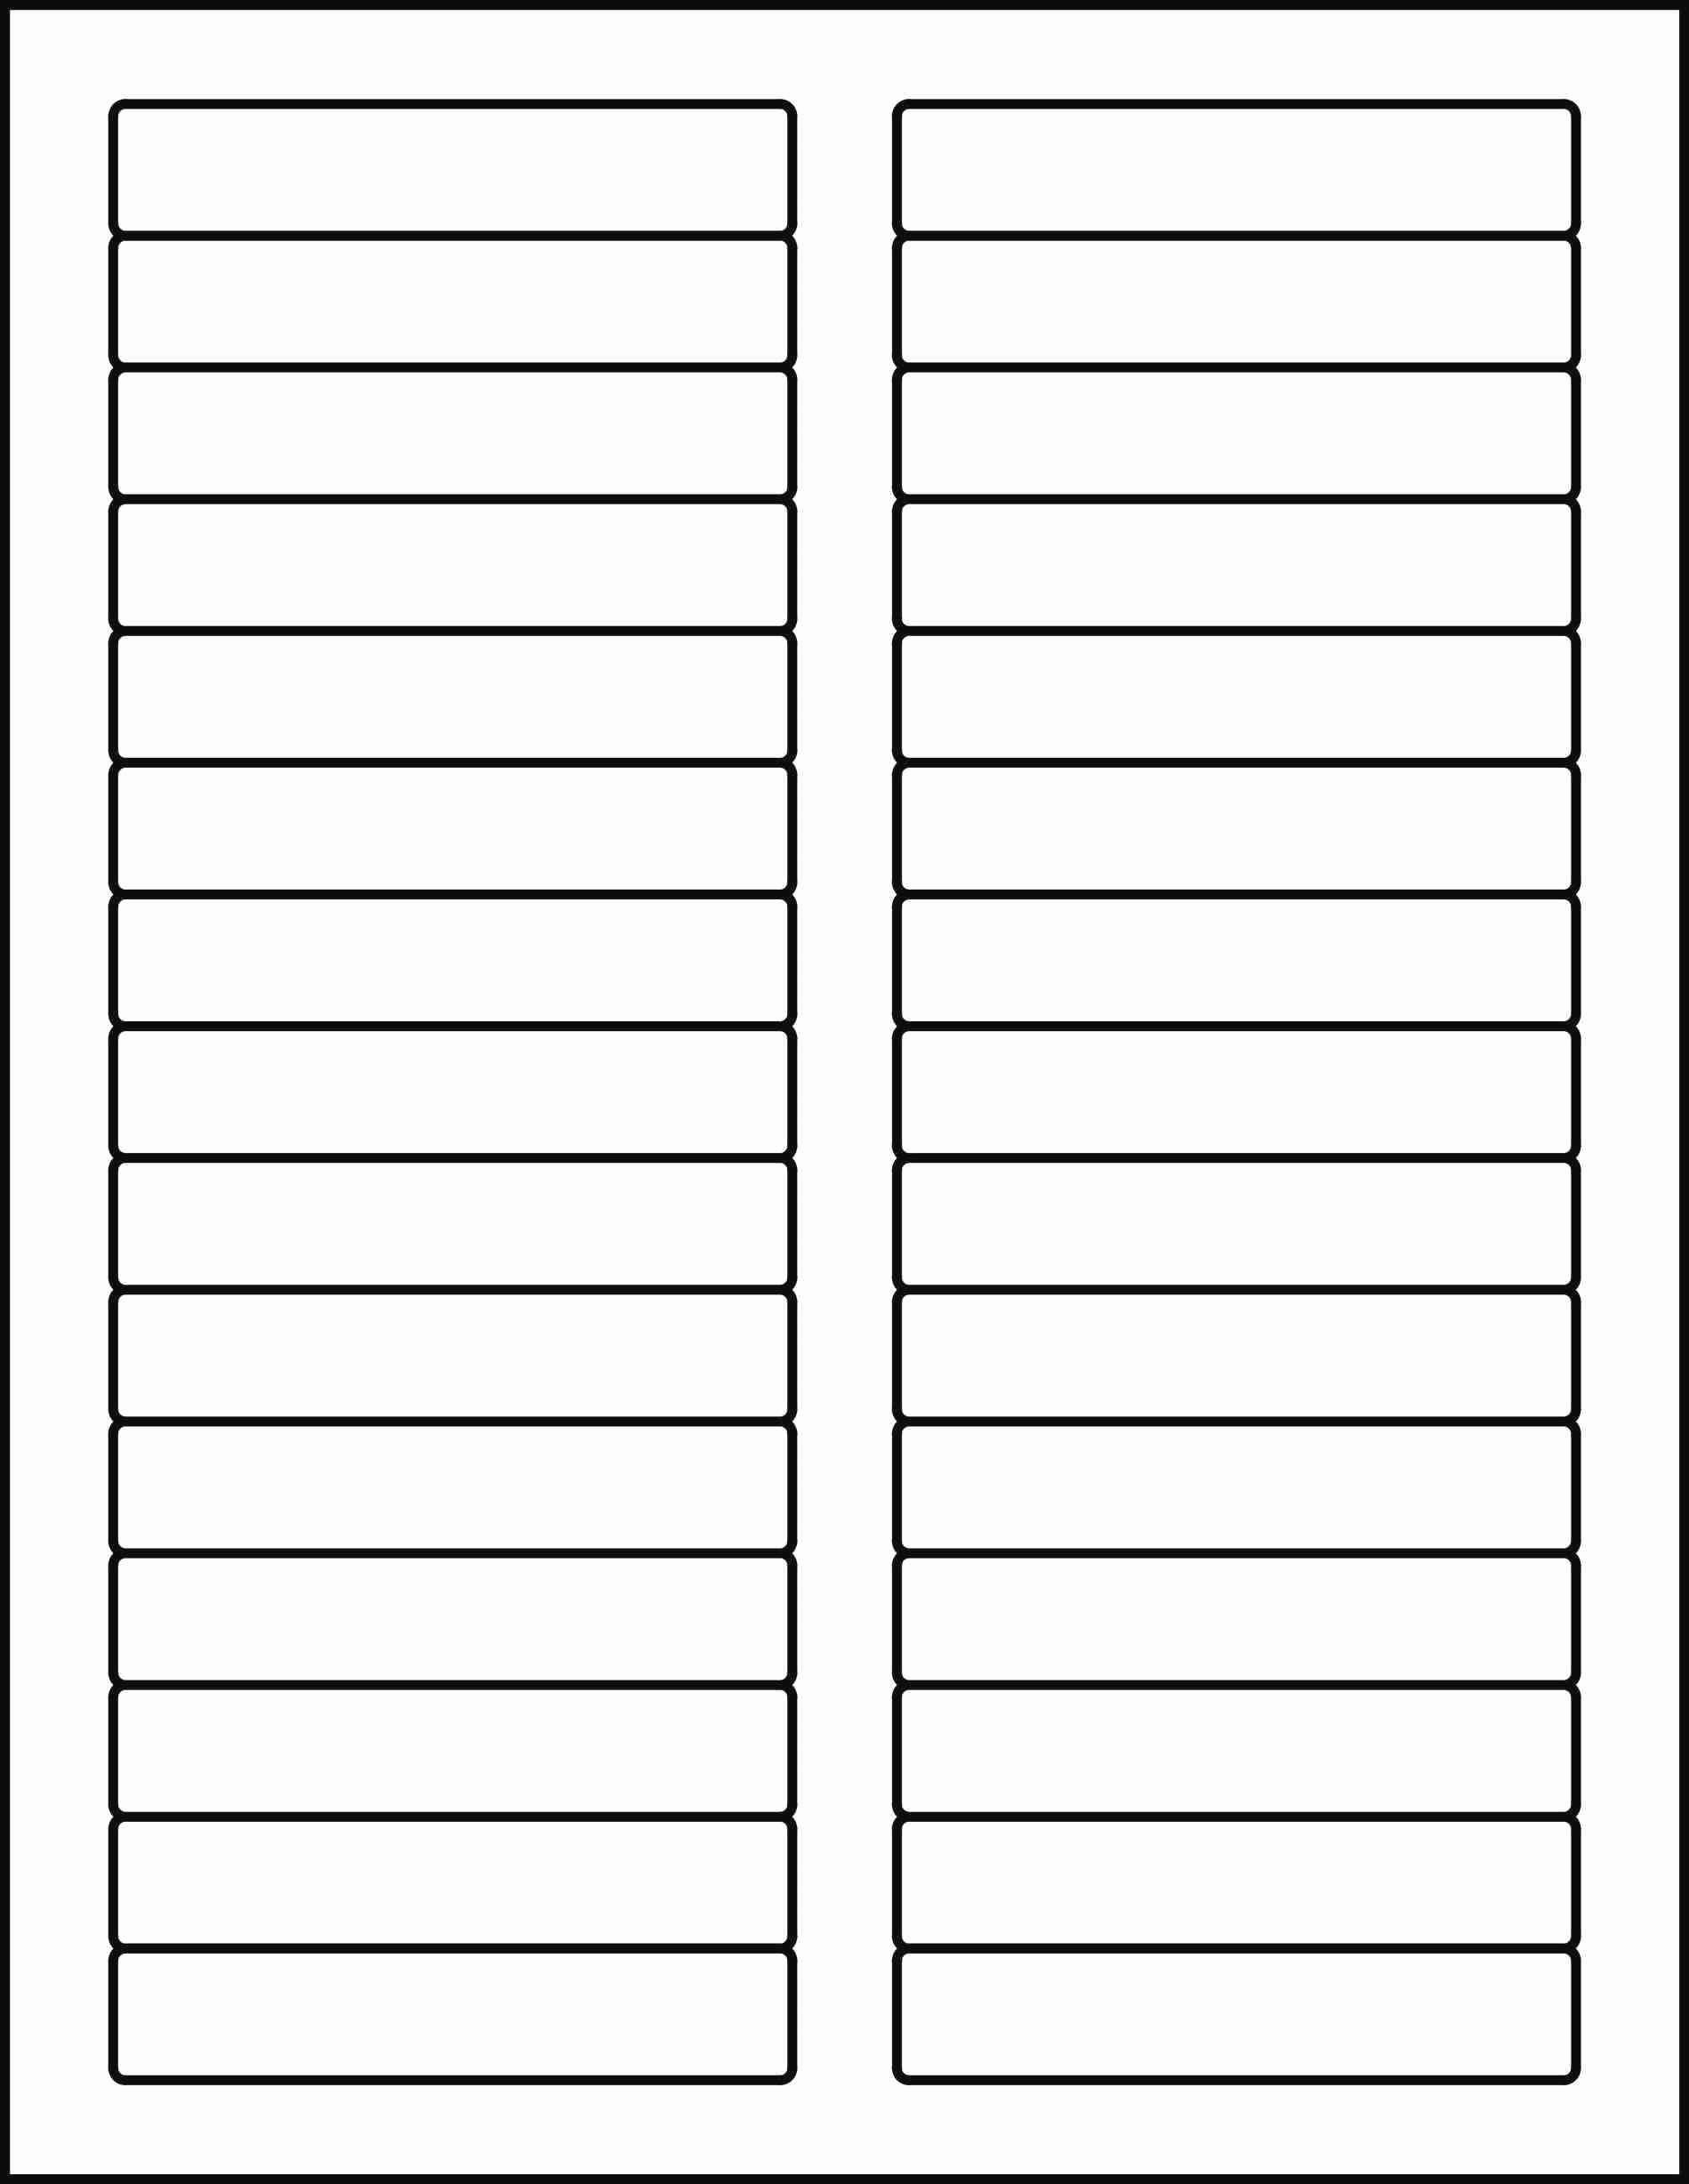 Avery 8167 Template for Pages New New Avery Return Address Label Template 5167